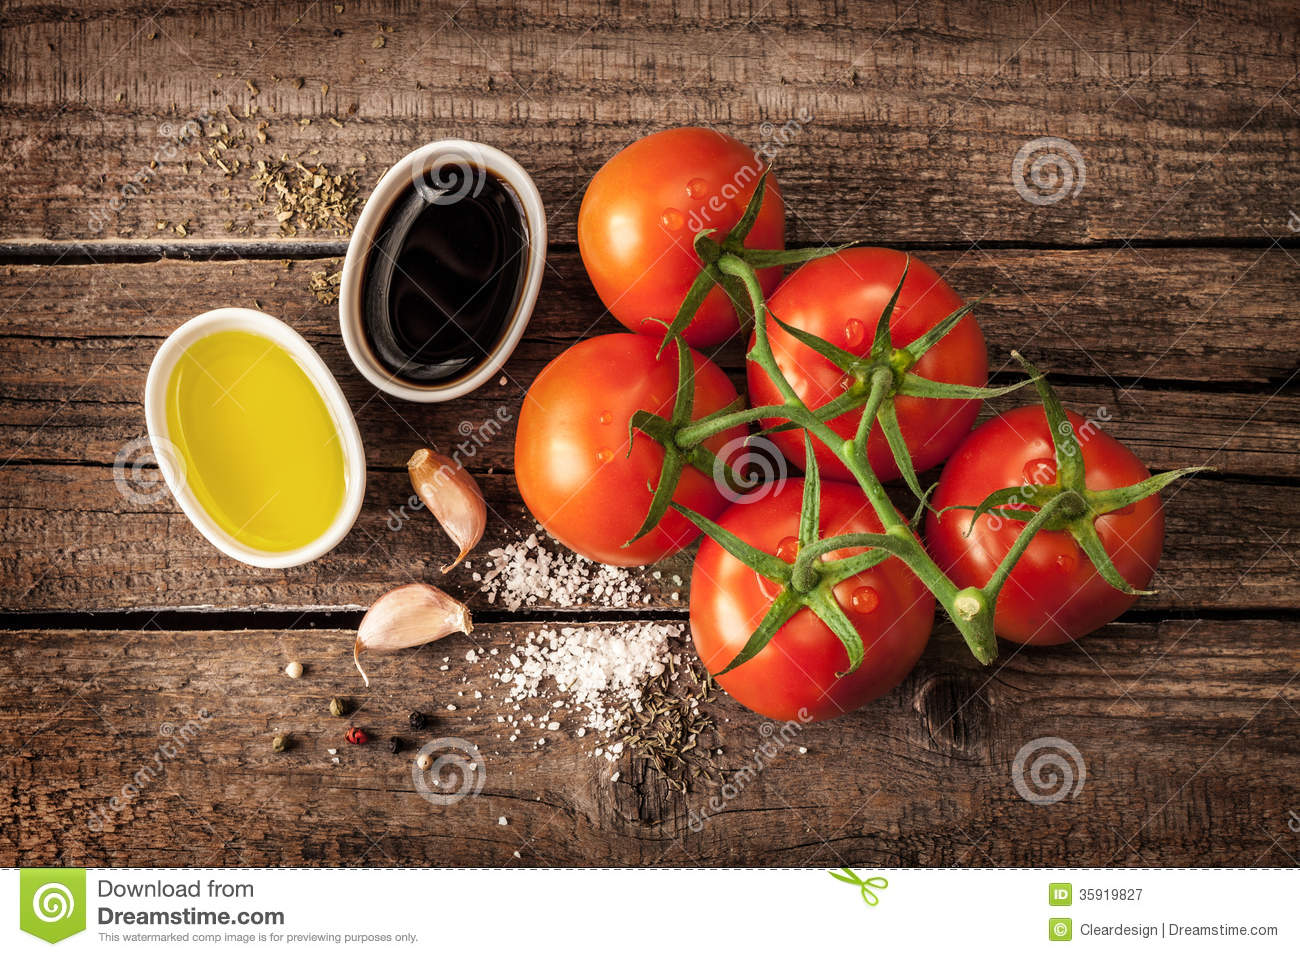 Vinaigrette or french dressing recipe ingredients and tomato branch on ...